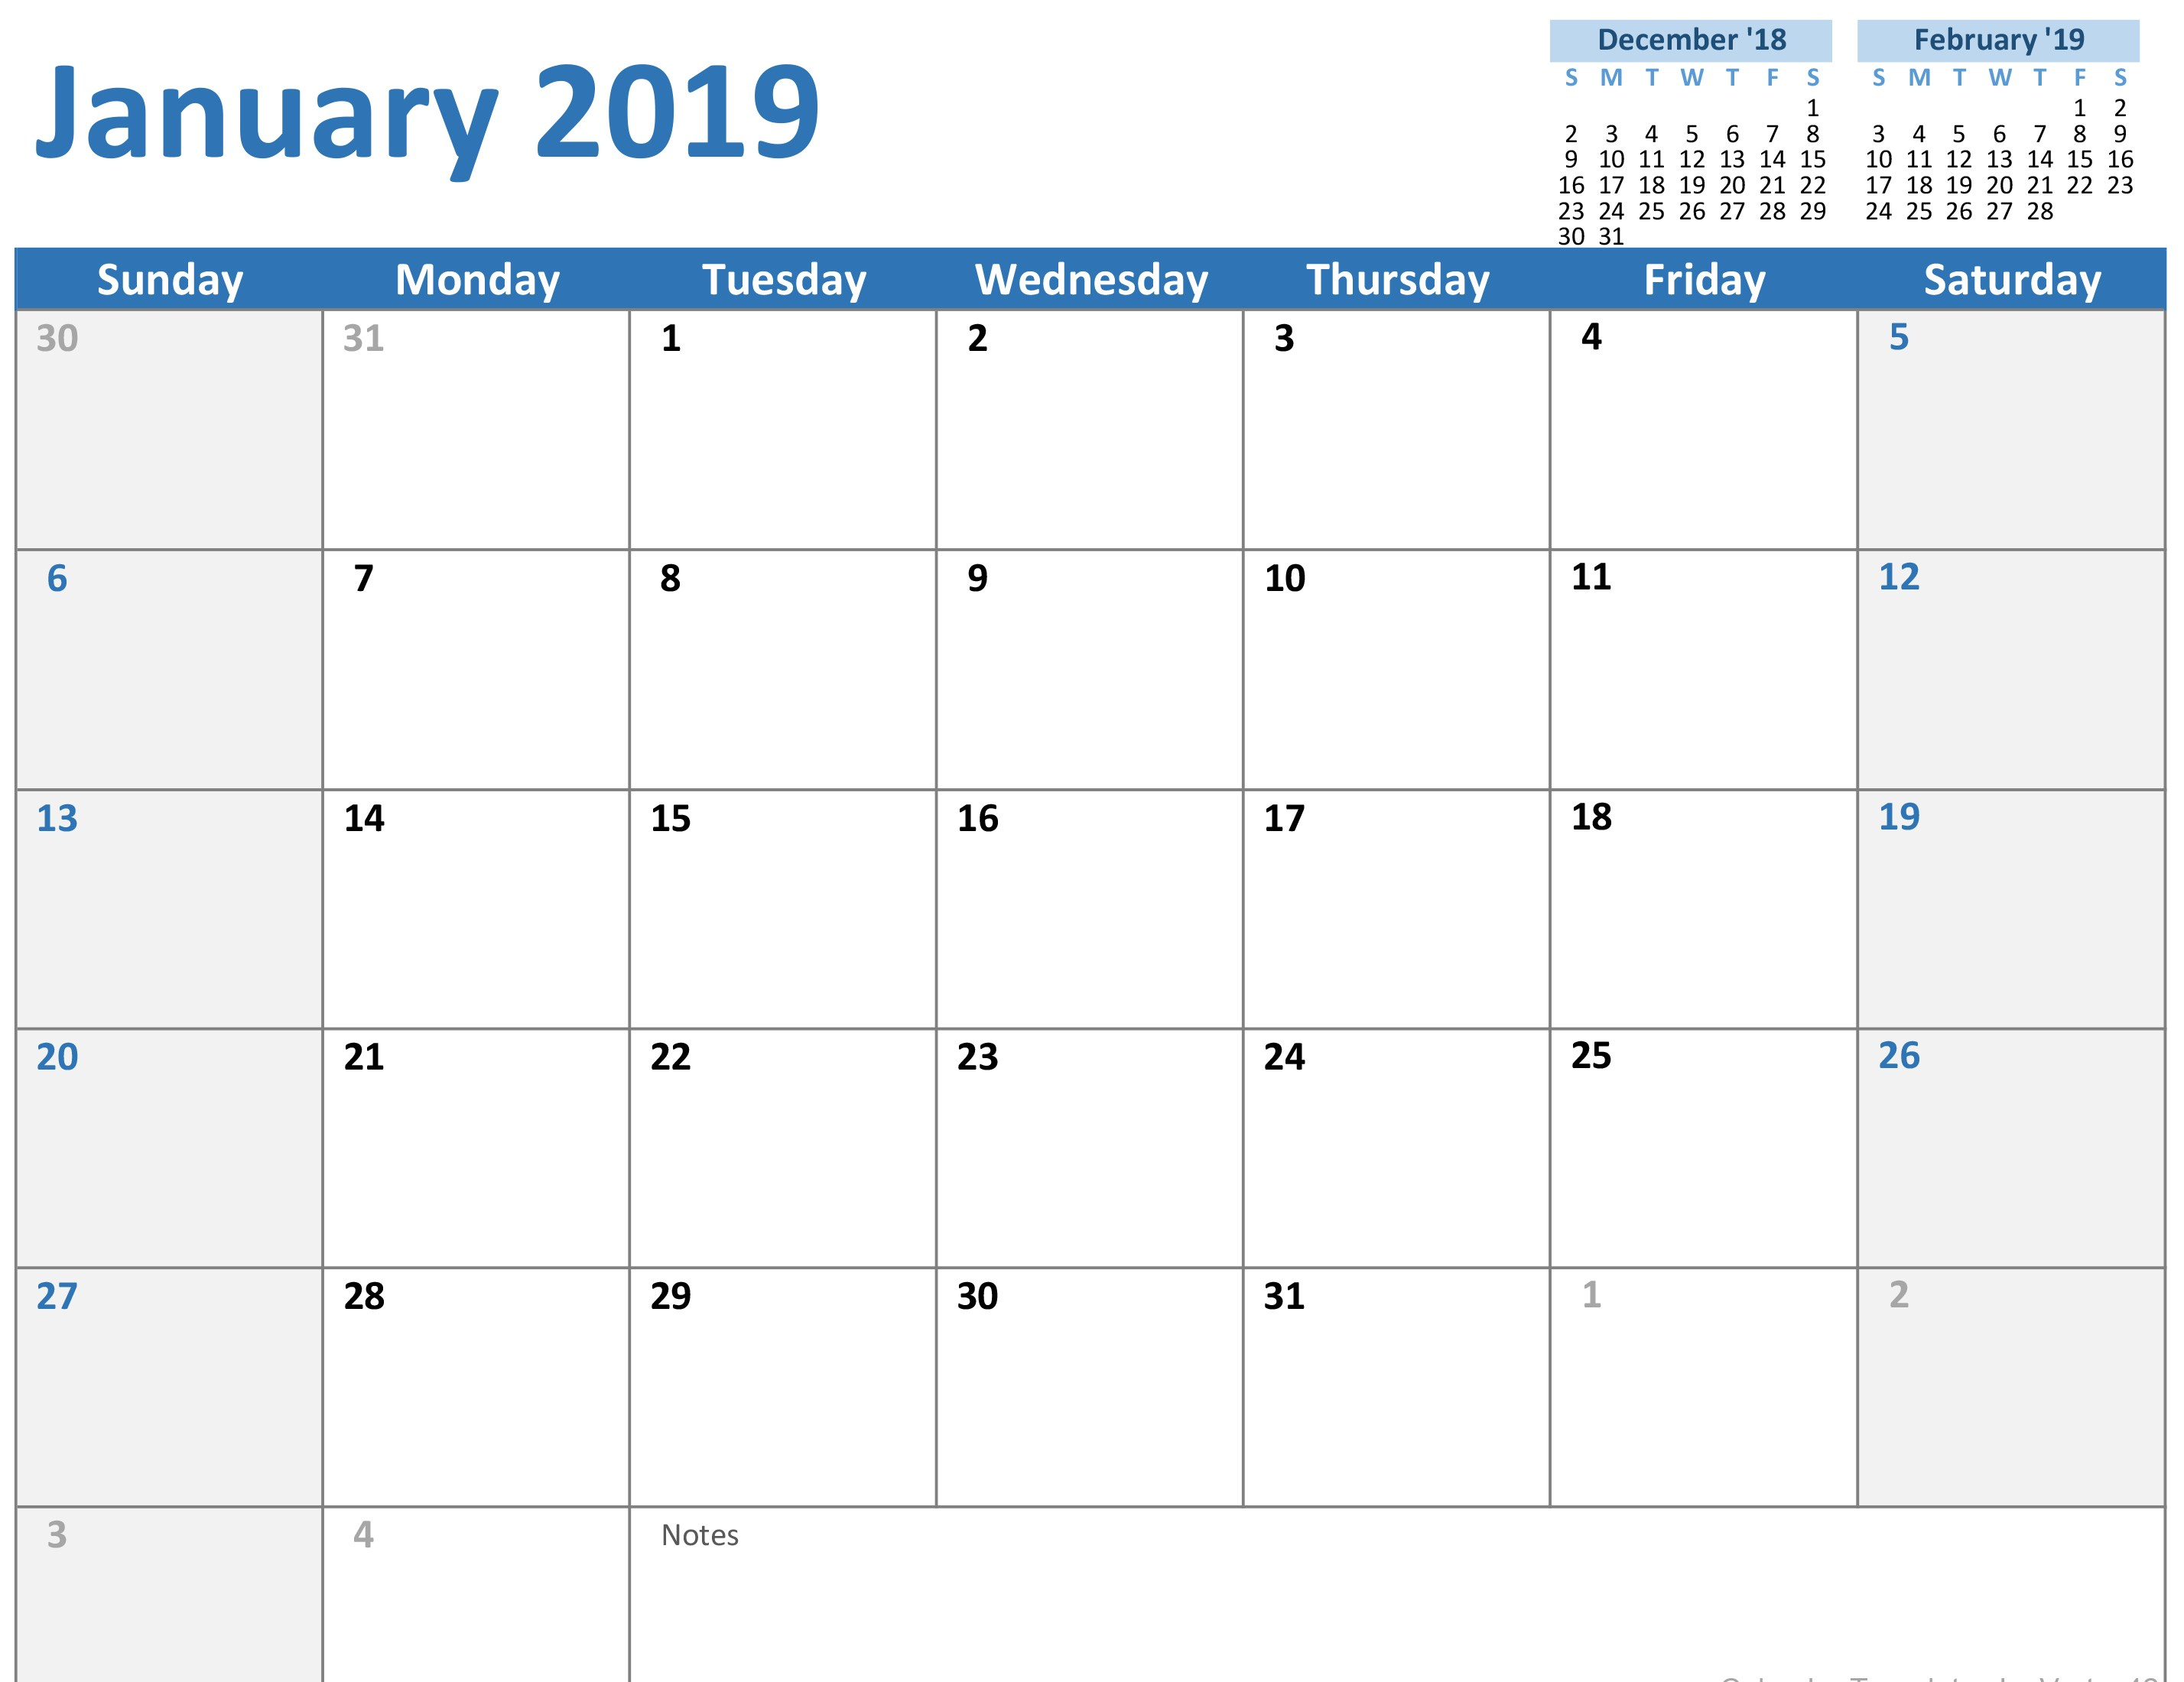 Calendar Template For Microsoft Word - Tunu.redmini.co